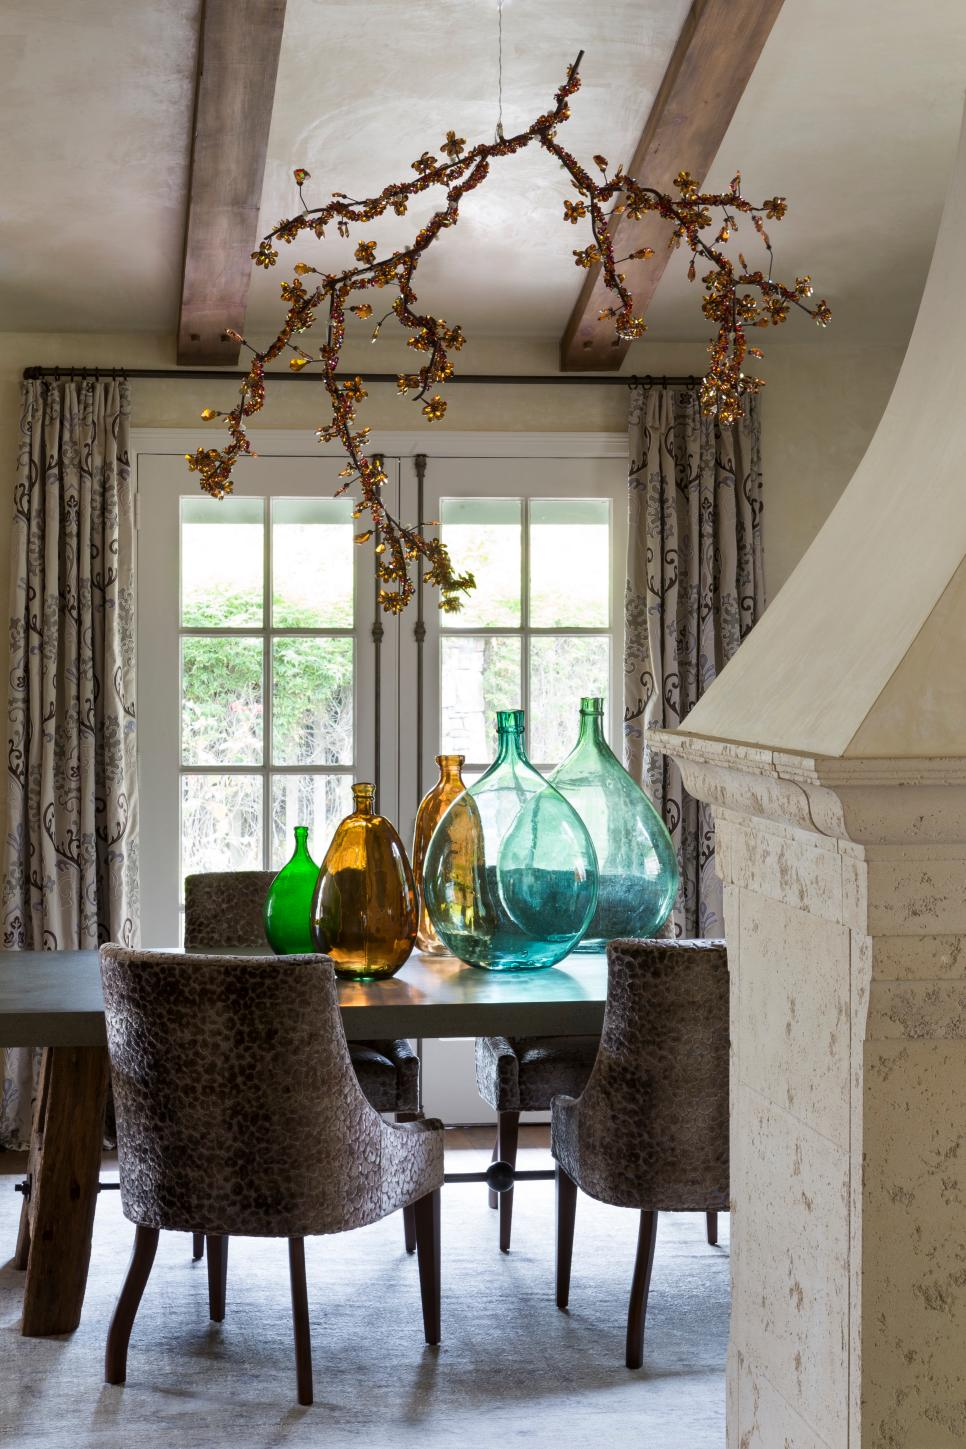 Dining Room With Glass Bottles